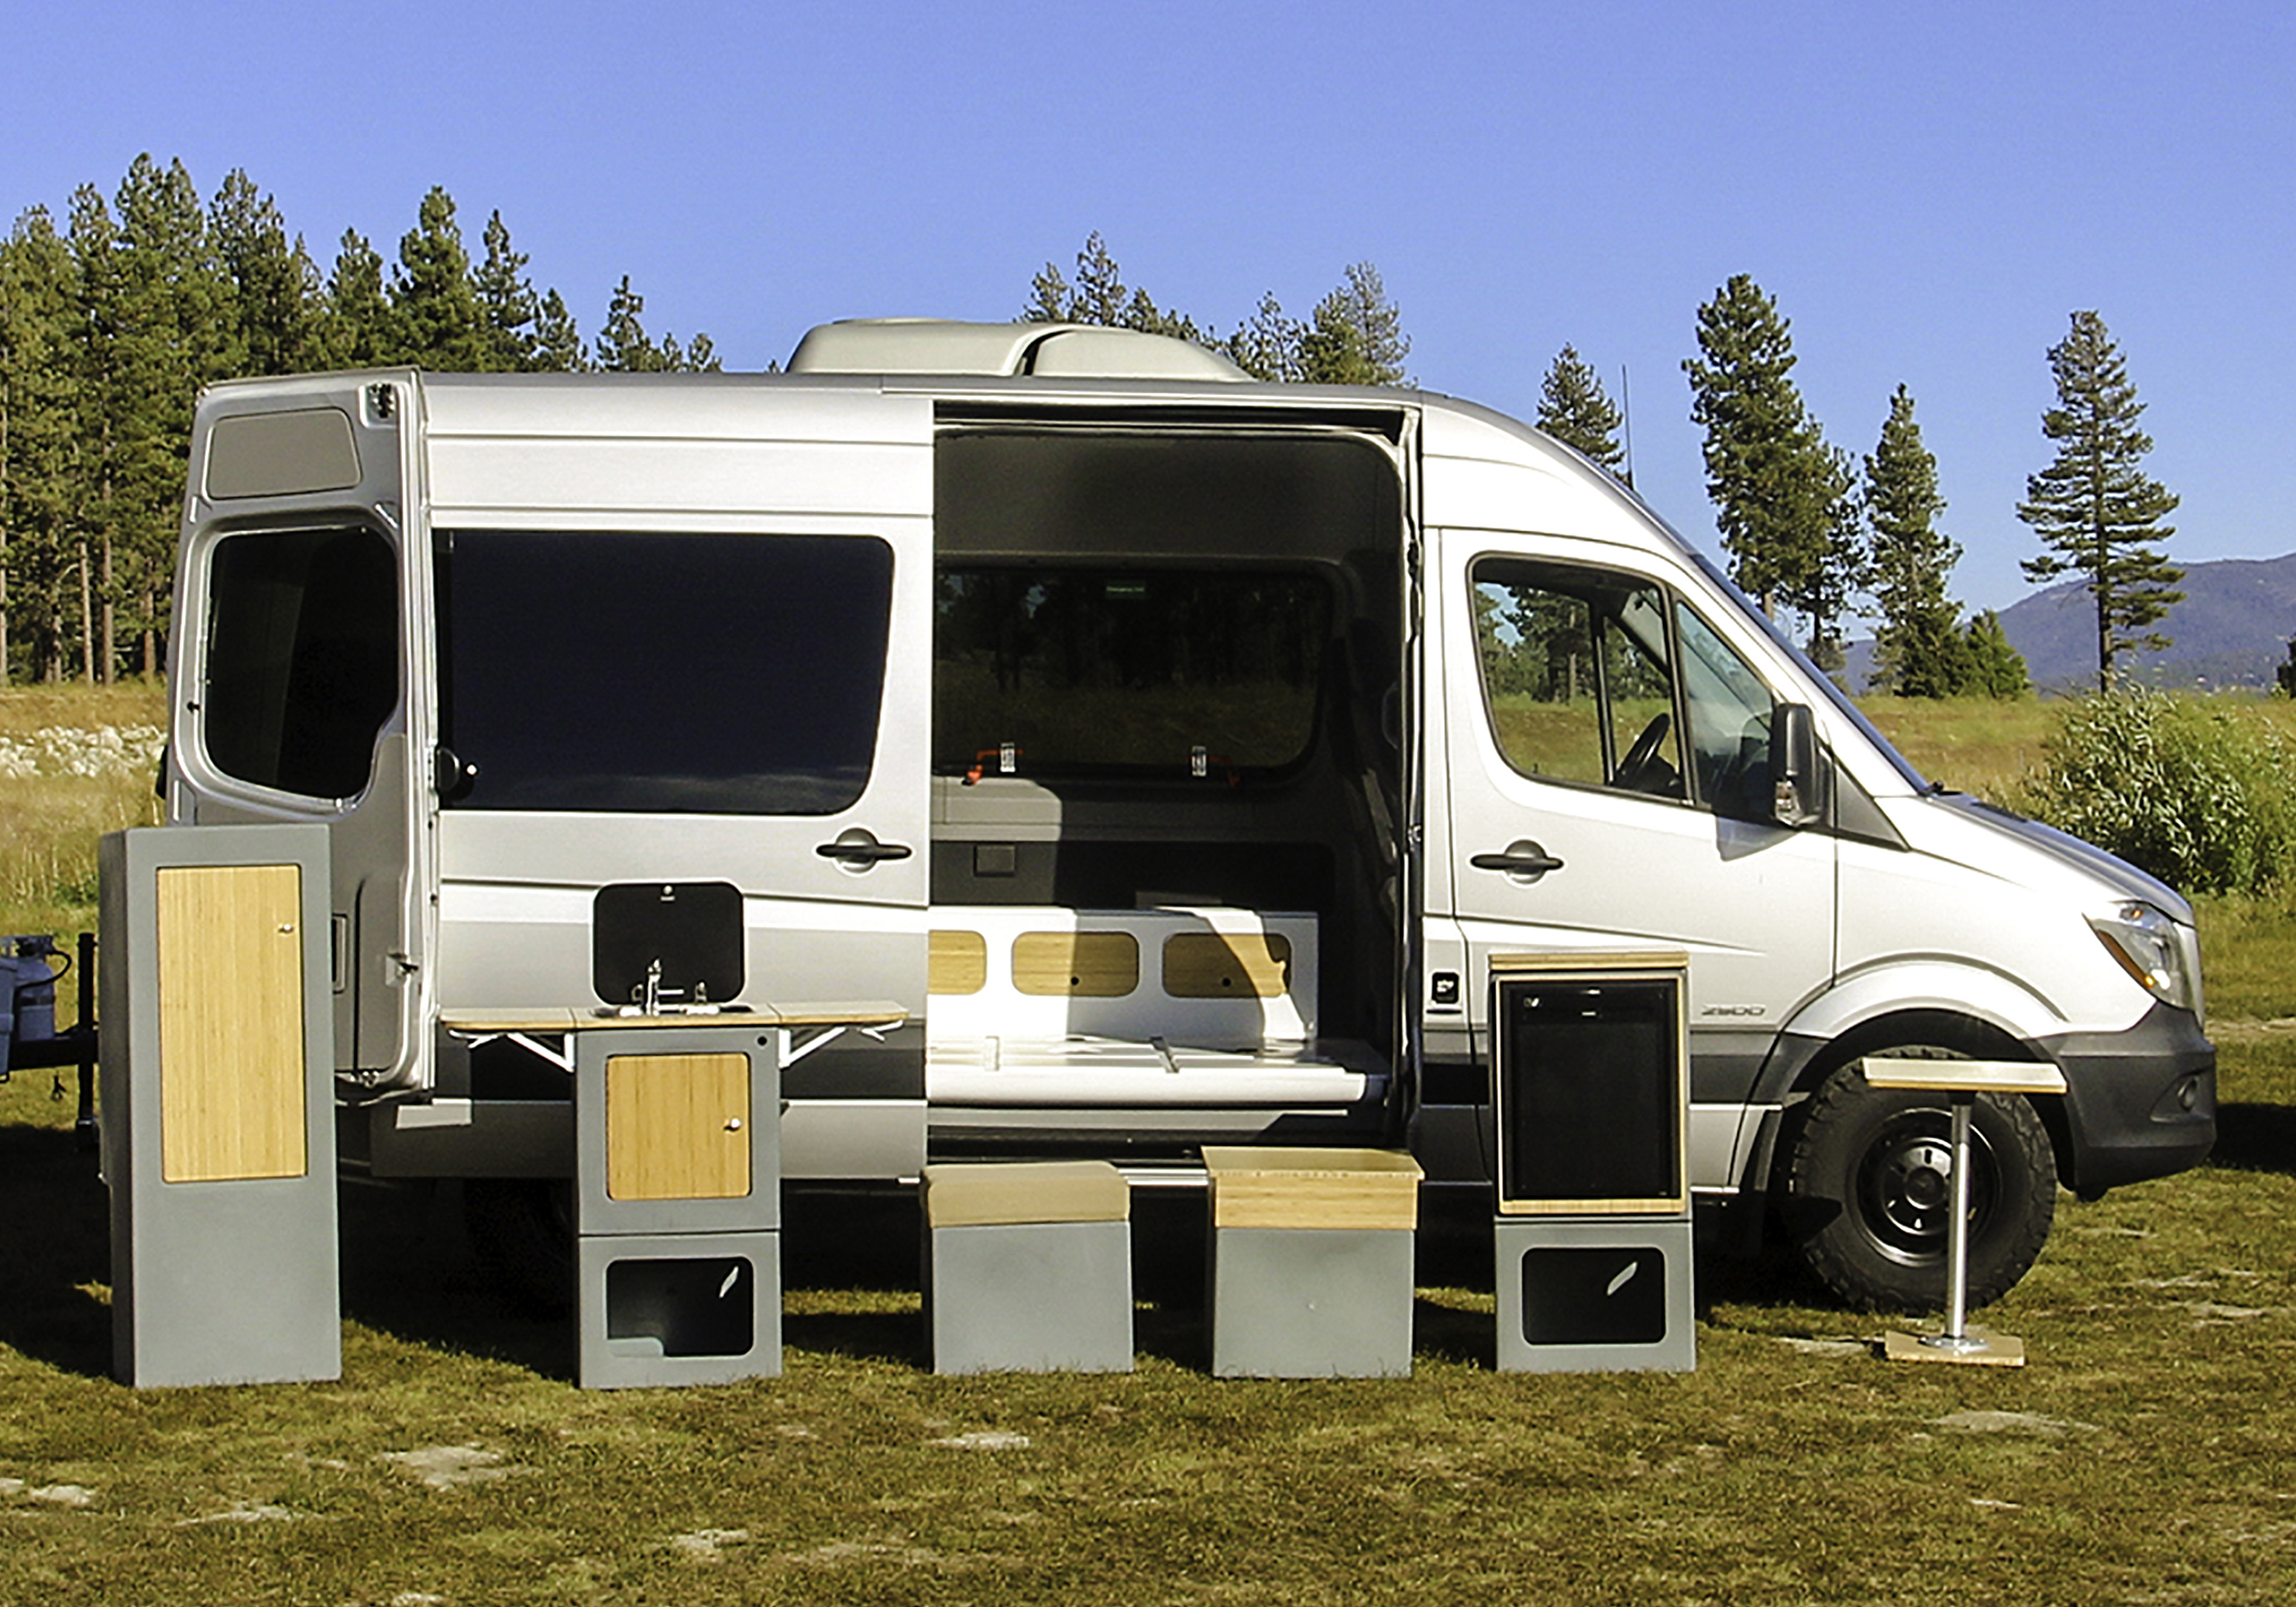 Happier Adaptiv camper van changes the game with Lego-style modularity